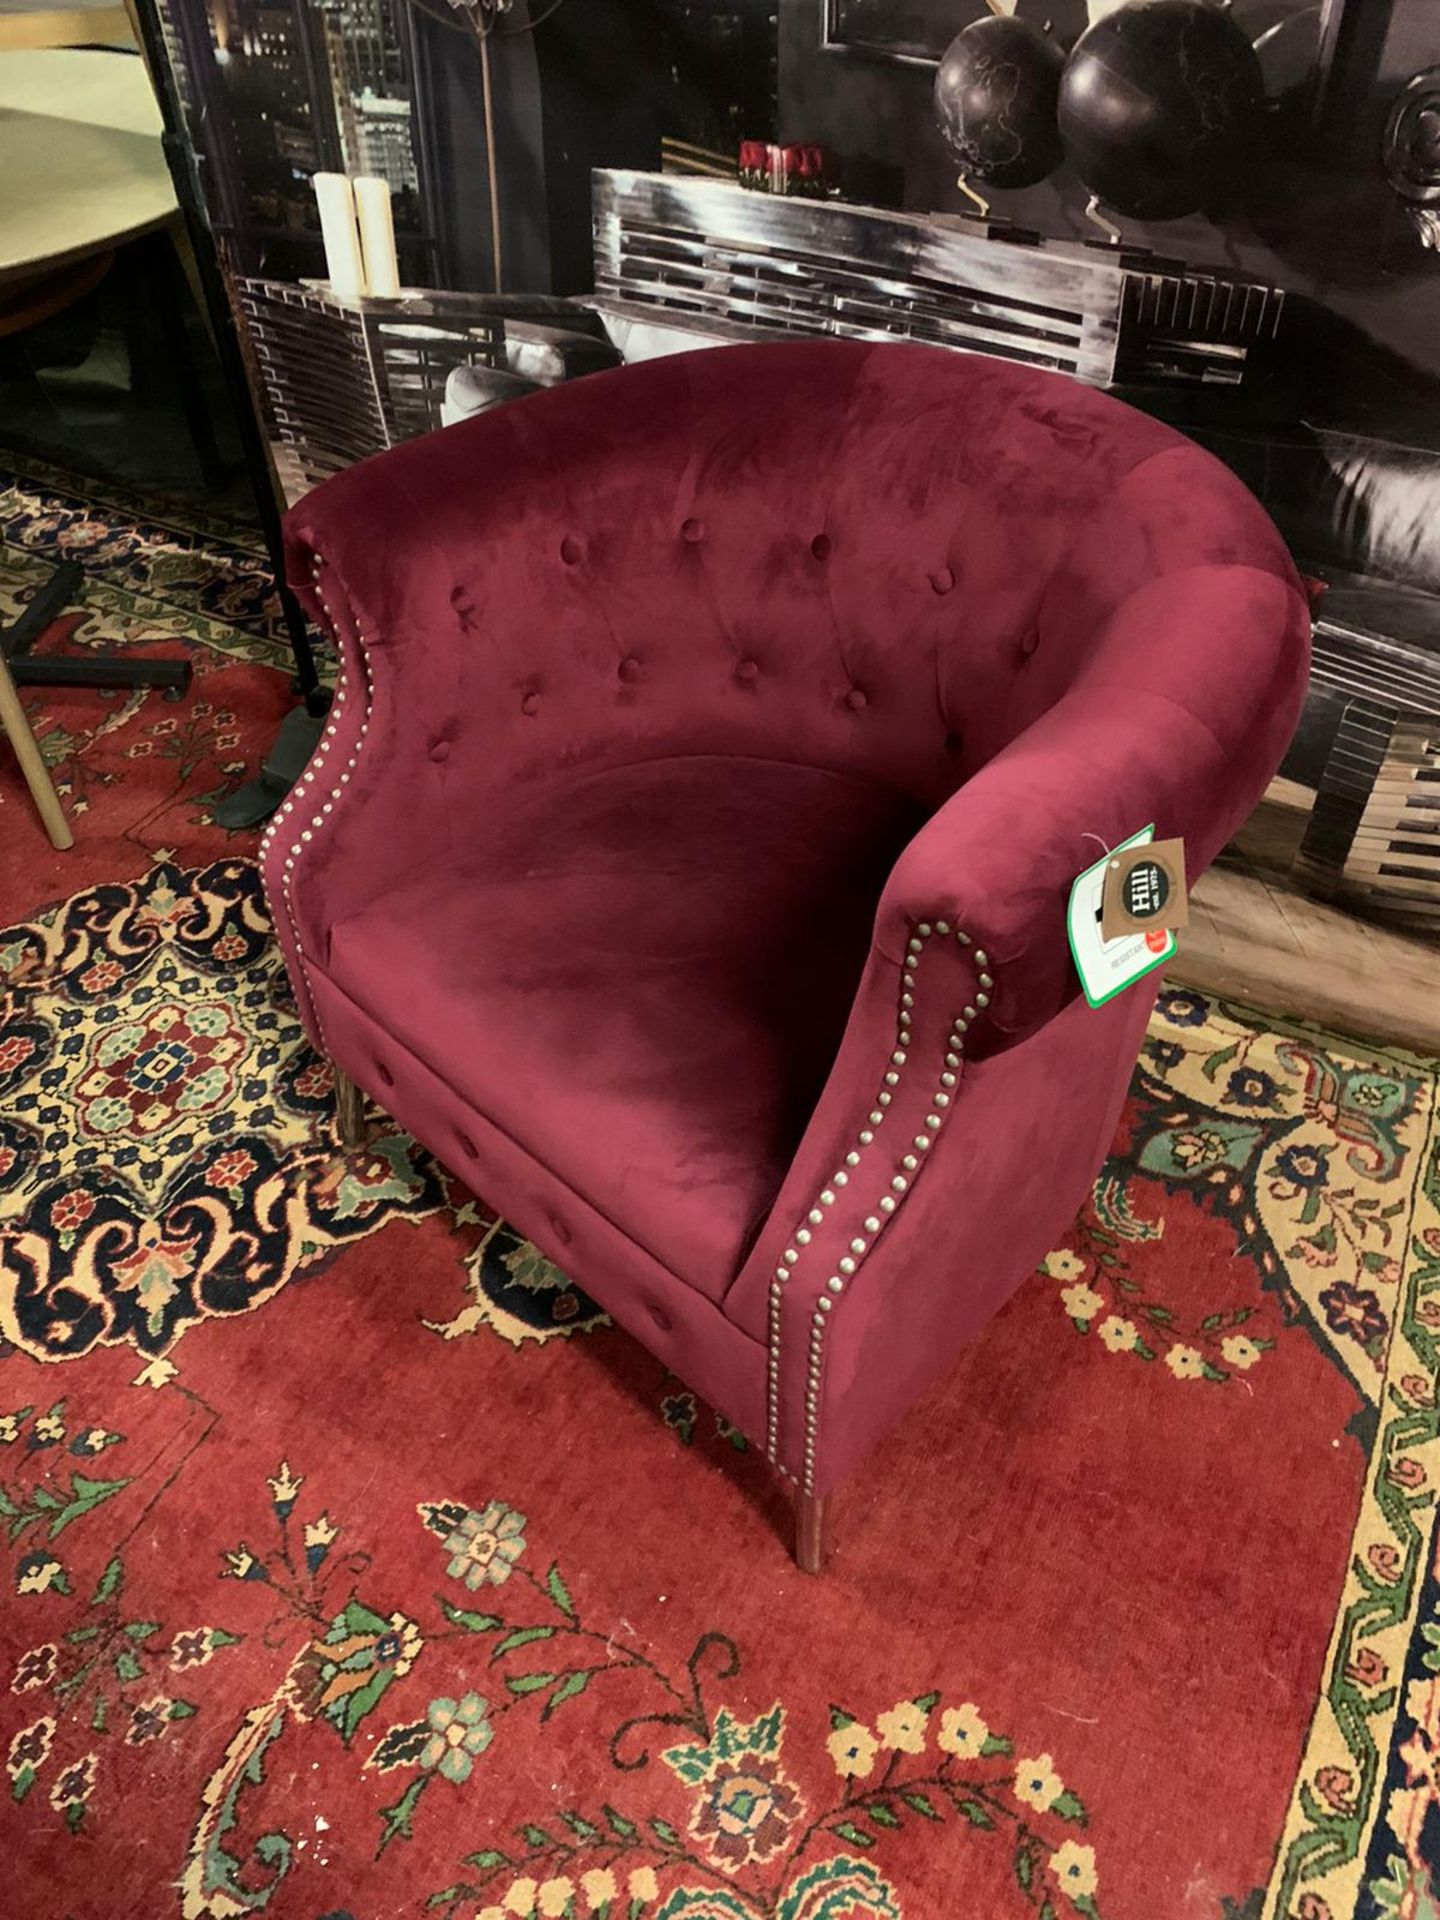 Weymouth Velvet Chesterfield Chair, with a combination of traditional style and modern - Image 2 of 4